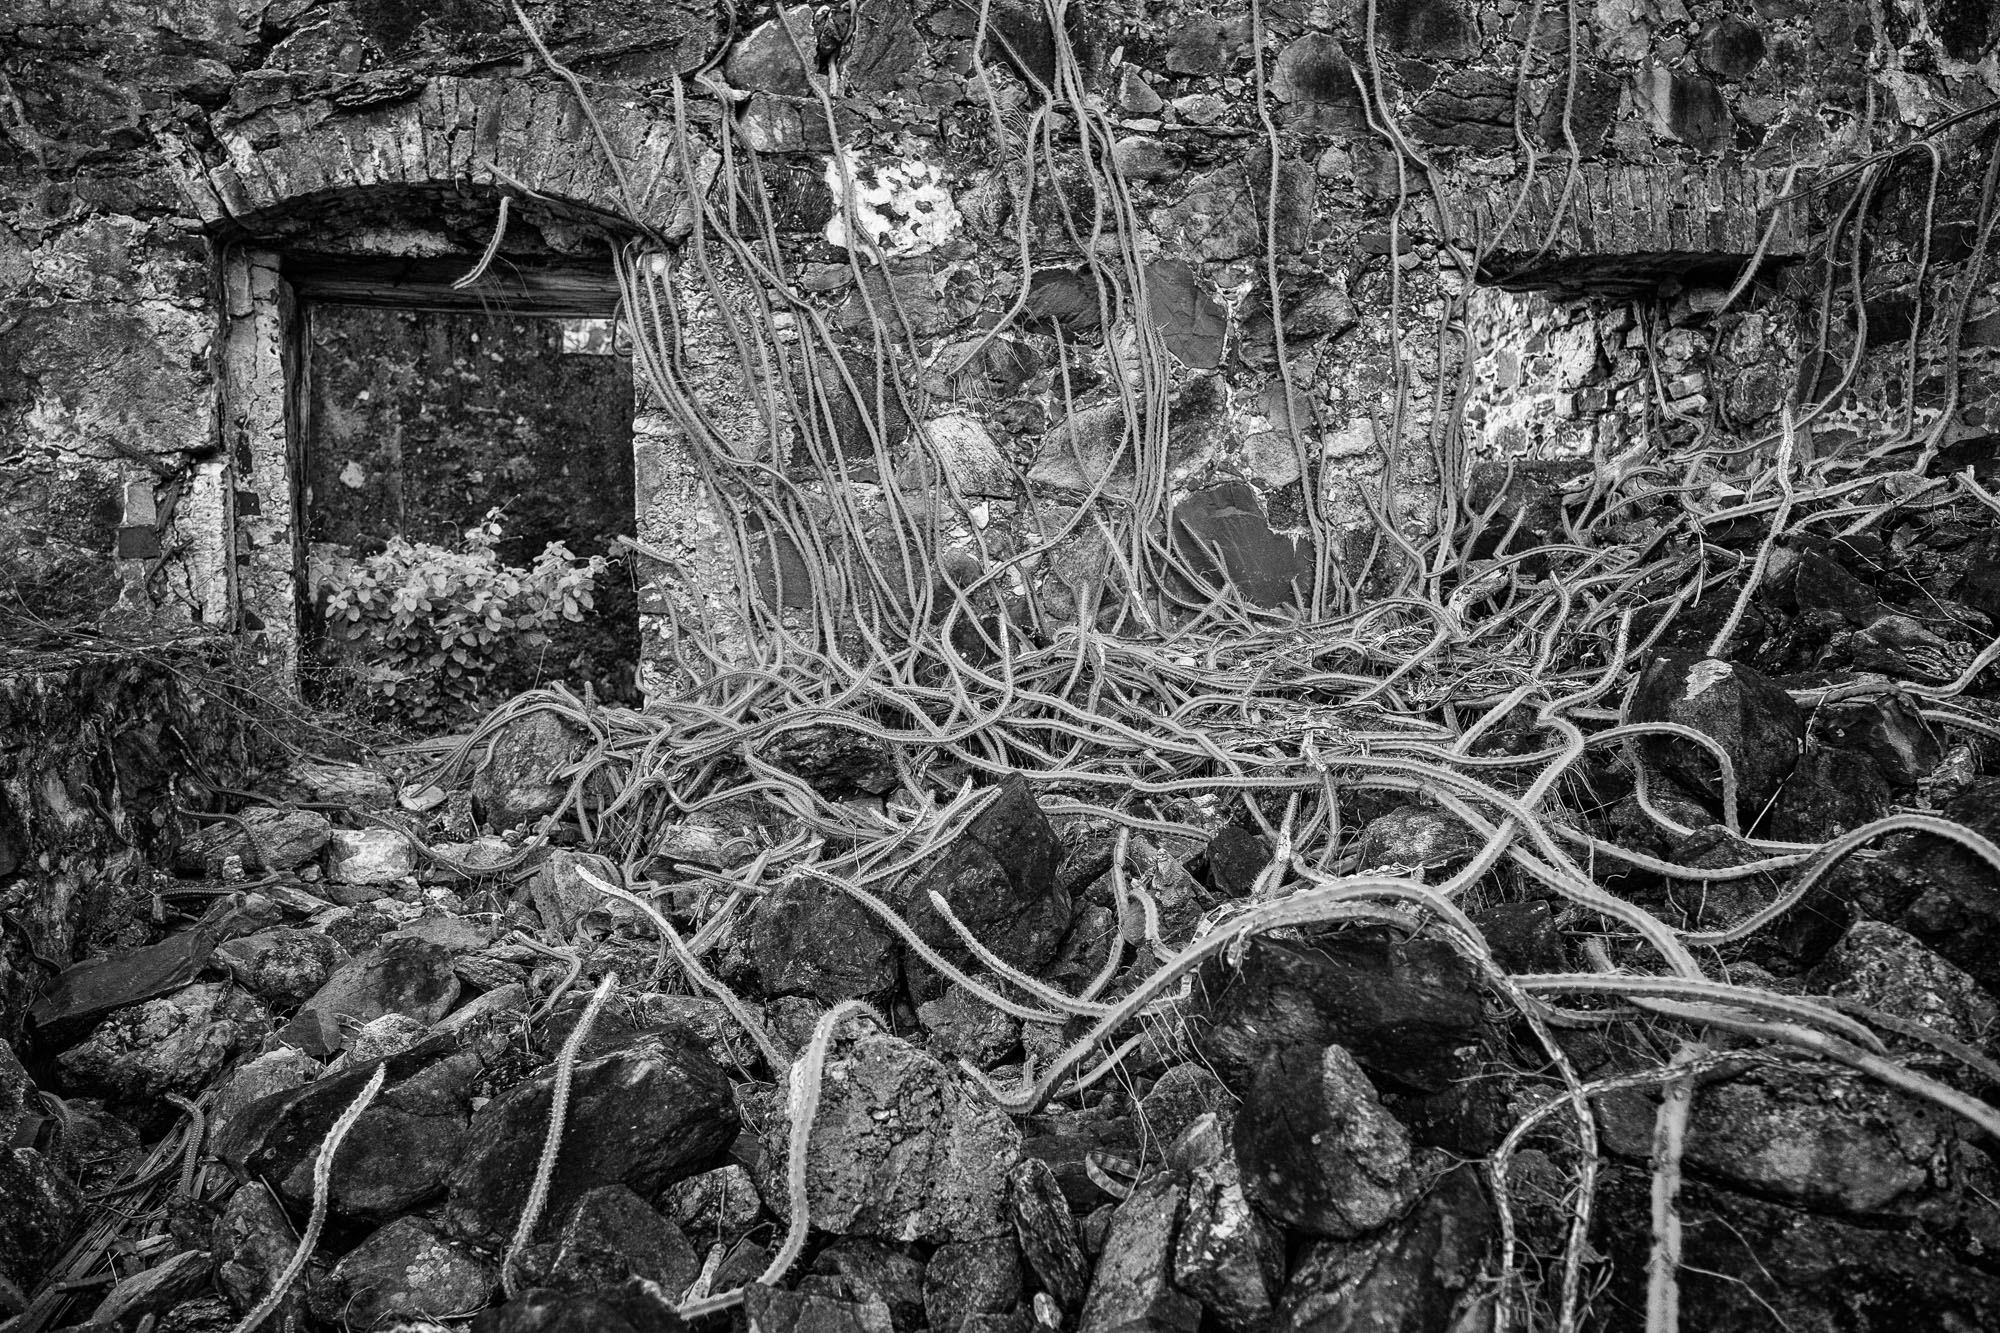 Old ruins and vines....fun to play in black and white.